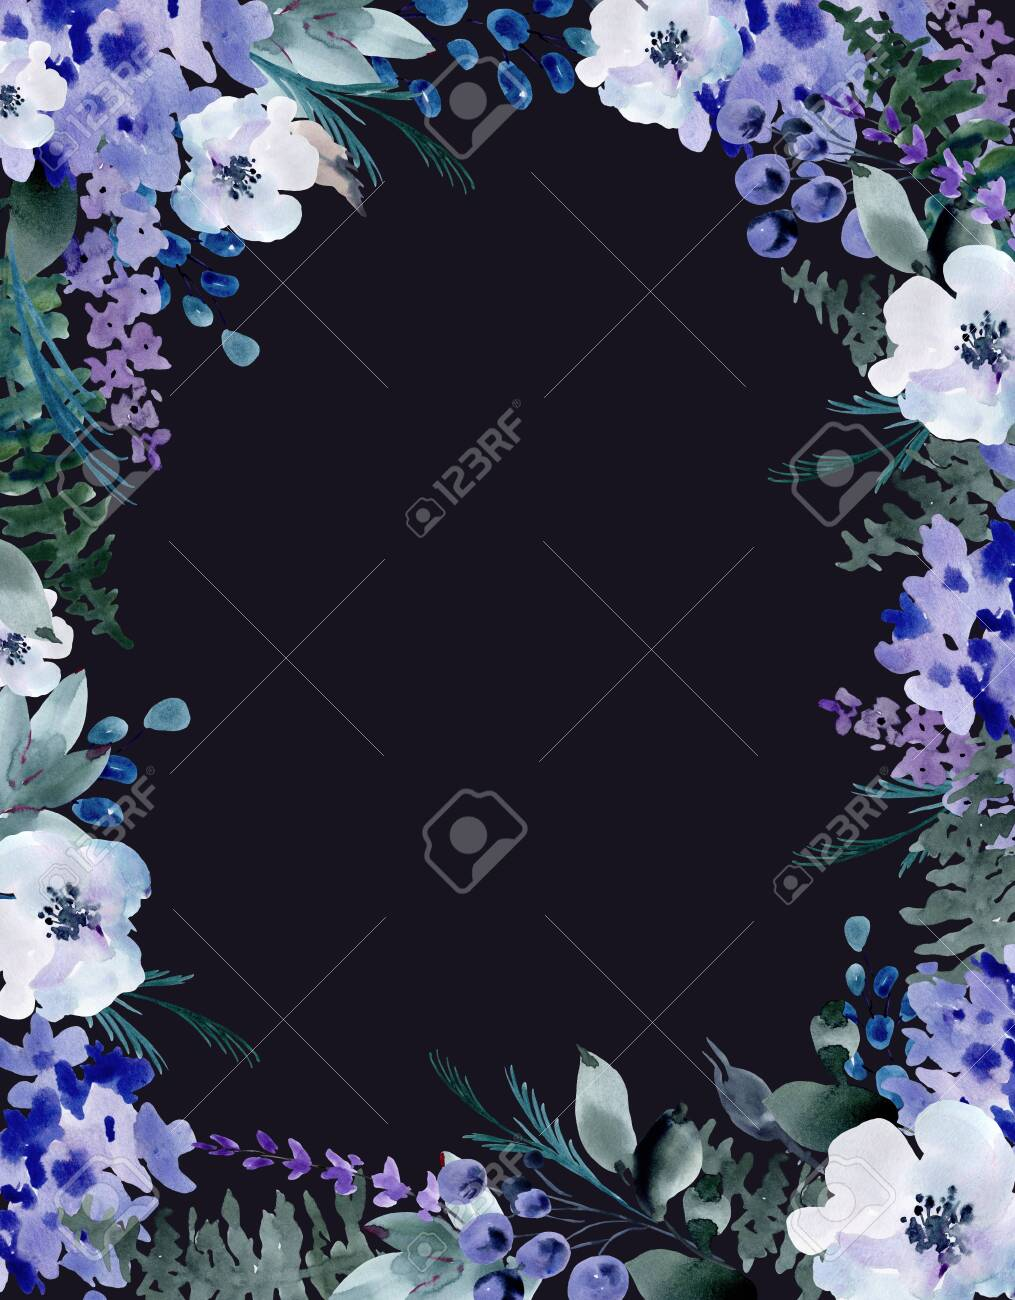 Summer Blue Watercolor Floral Greeting Card Wedding Bouquet Stock Photo Picture And Royalty Free Image Image 136710678